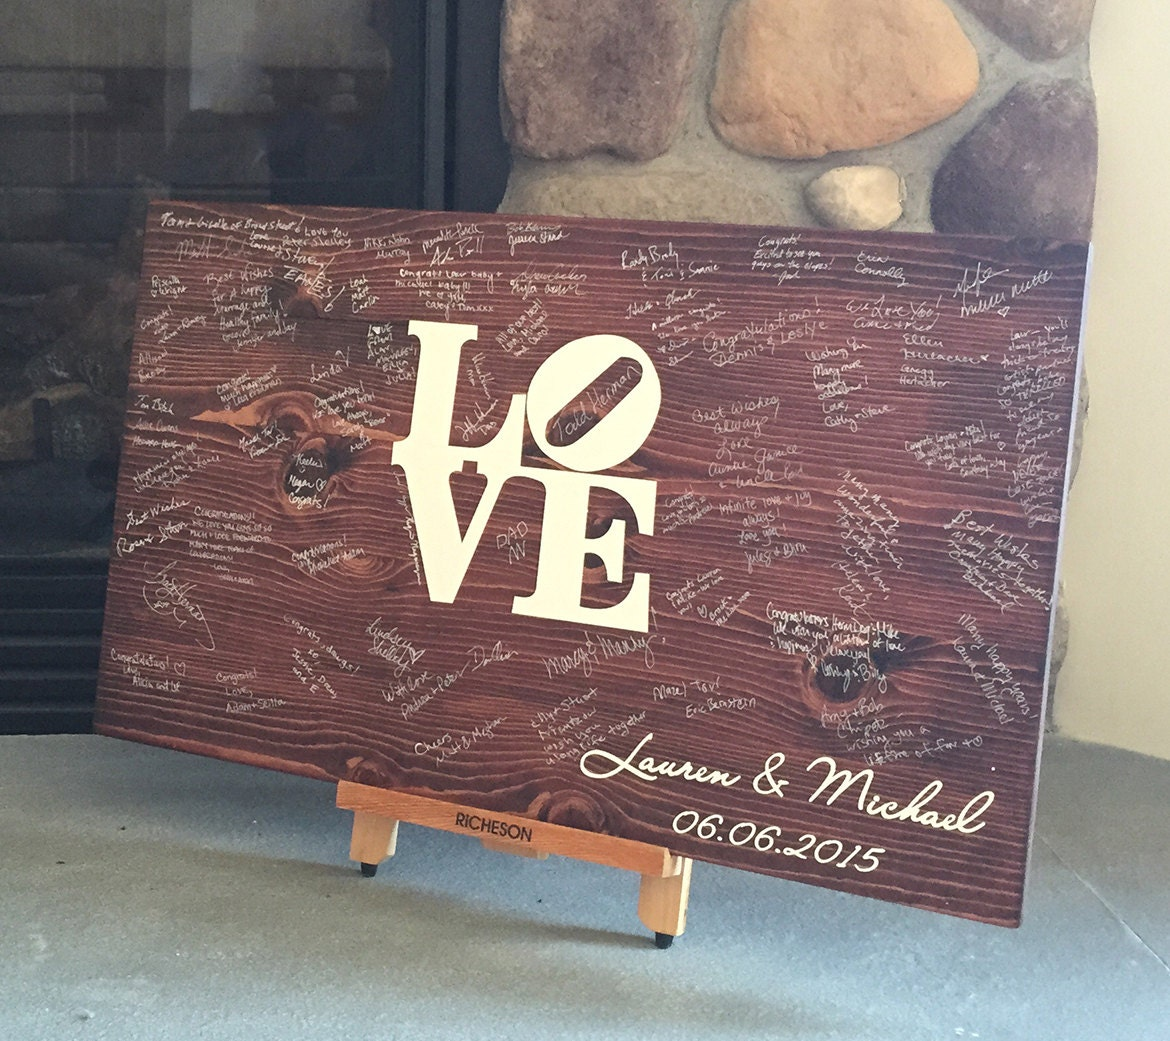 philly love wedding gifts for guests Wedding Guest book Wood Guest book Wedding Guestbook Philly LOVE Sign Weddings Bridal shower gift Guest Books Wedding gift idea